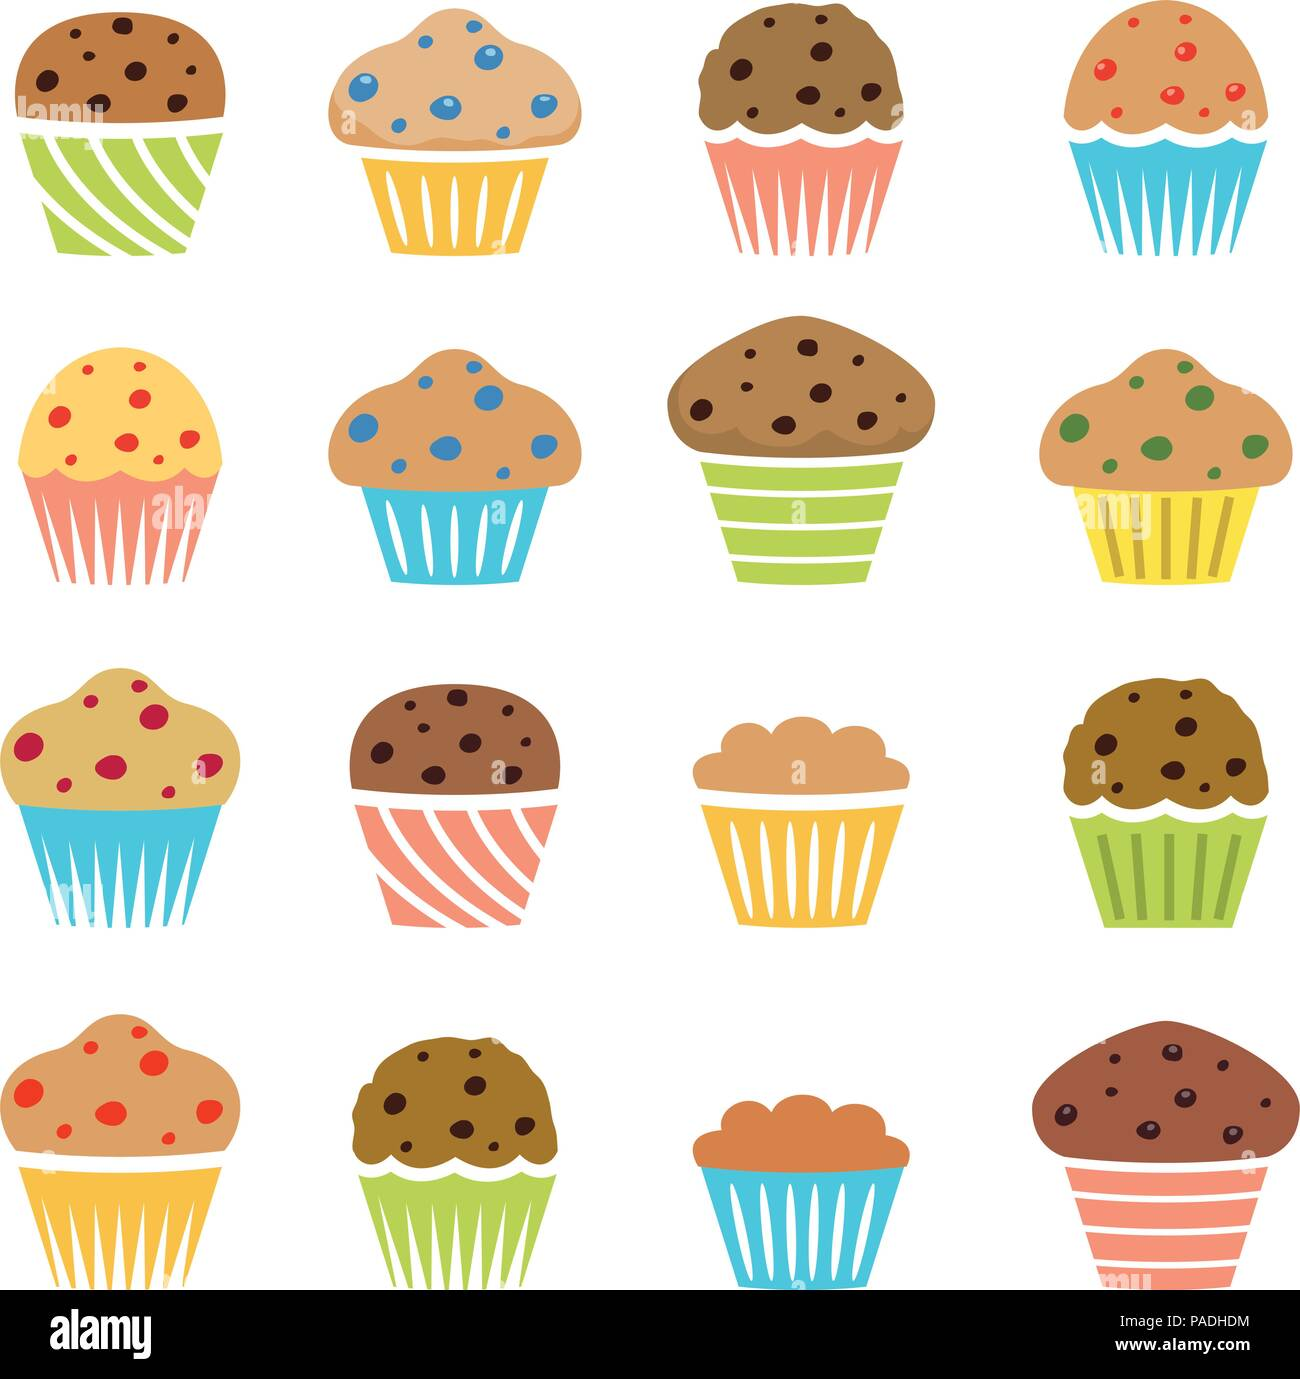 Vector Flat Icons Of Chocolate Chip And Fruit Muffins Isolated On White Background Symbols Of Dessert Homemade Cakes Stock Vector Image Art Alamy